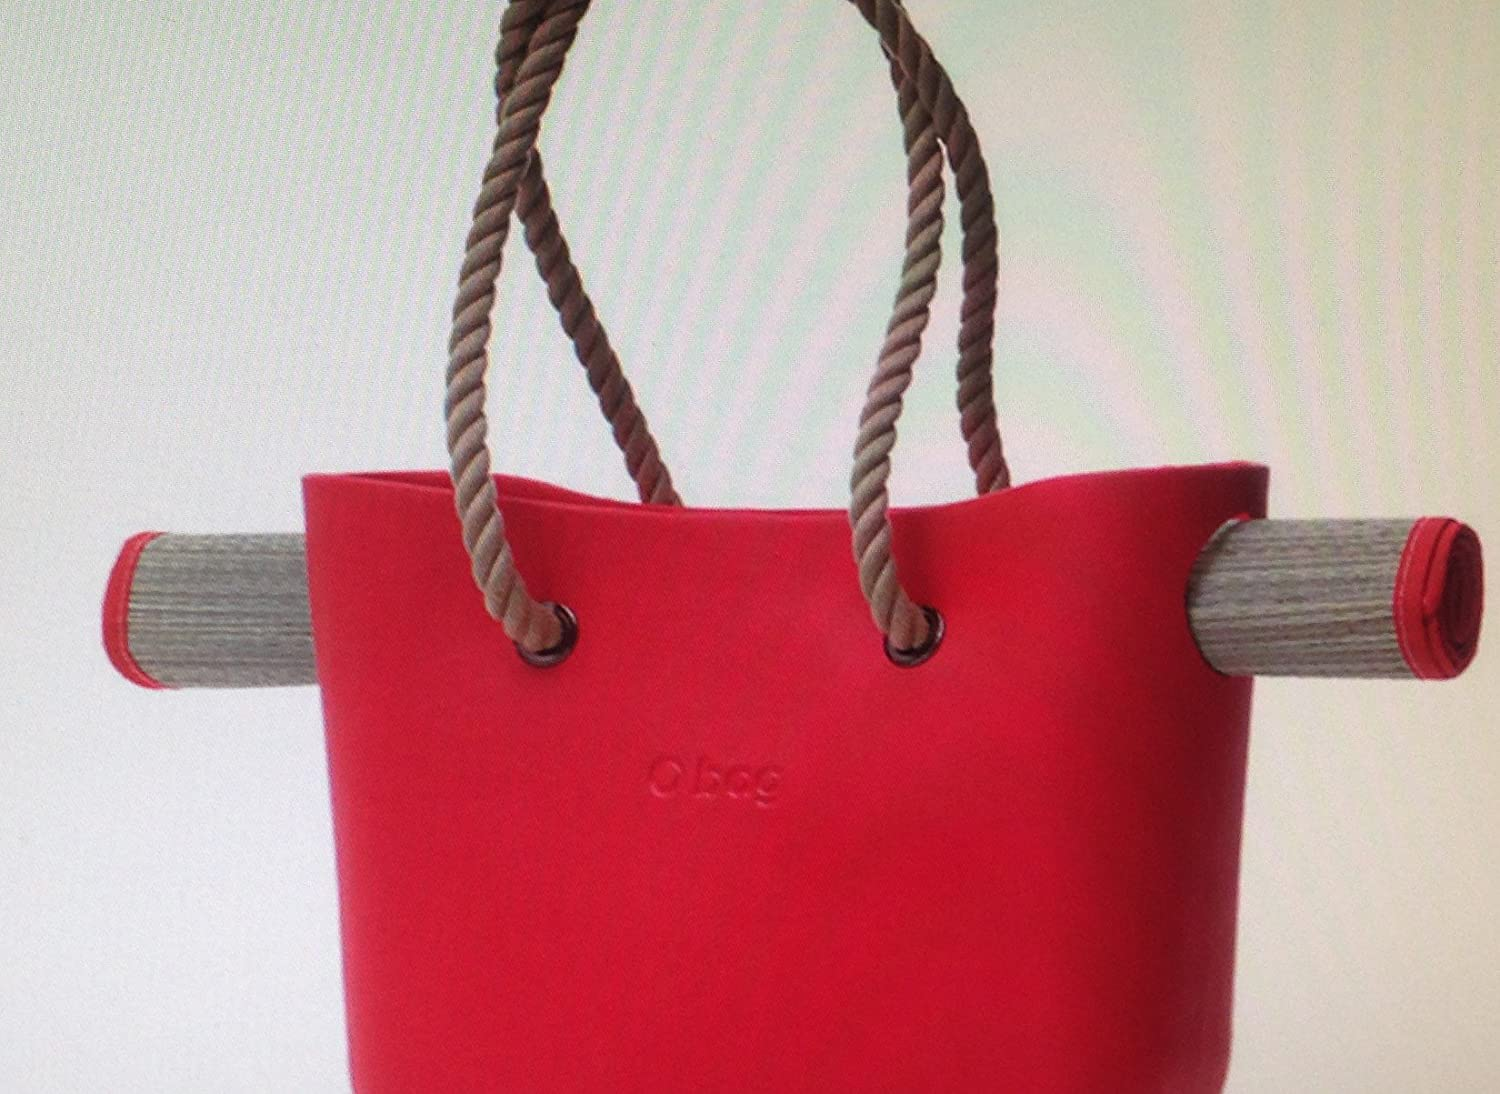 aa8b172a3 Obag Beach Bag - Shopping Tote Purse in Rock with Rope Handles Red:  Amazon.co.uk: Kitchen & Home